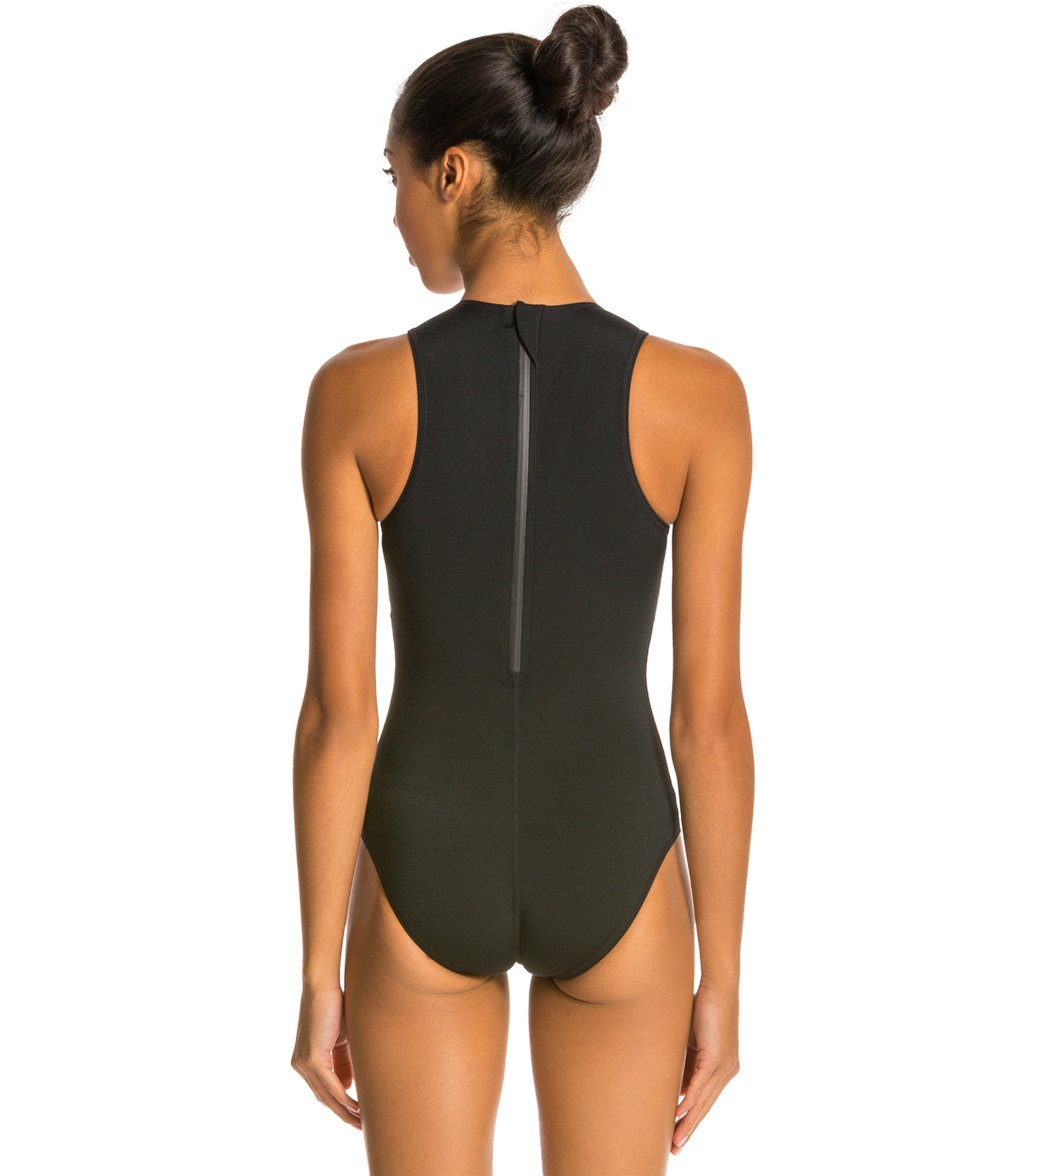 27503c39d5 Arena Waterpolo One Piece Swimsuit at SwimOutlet.com - Free Shipping